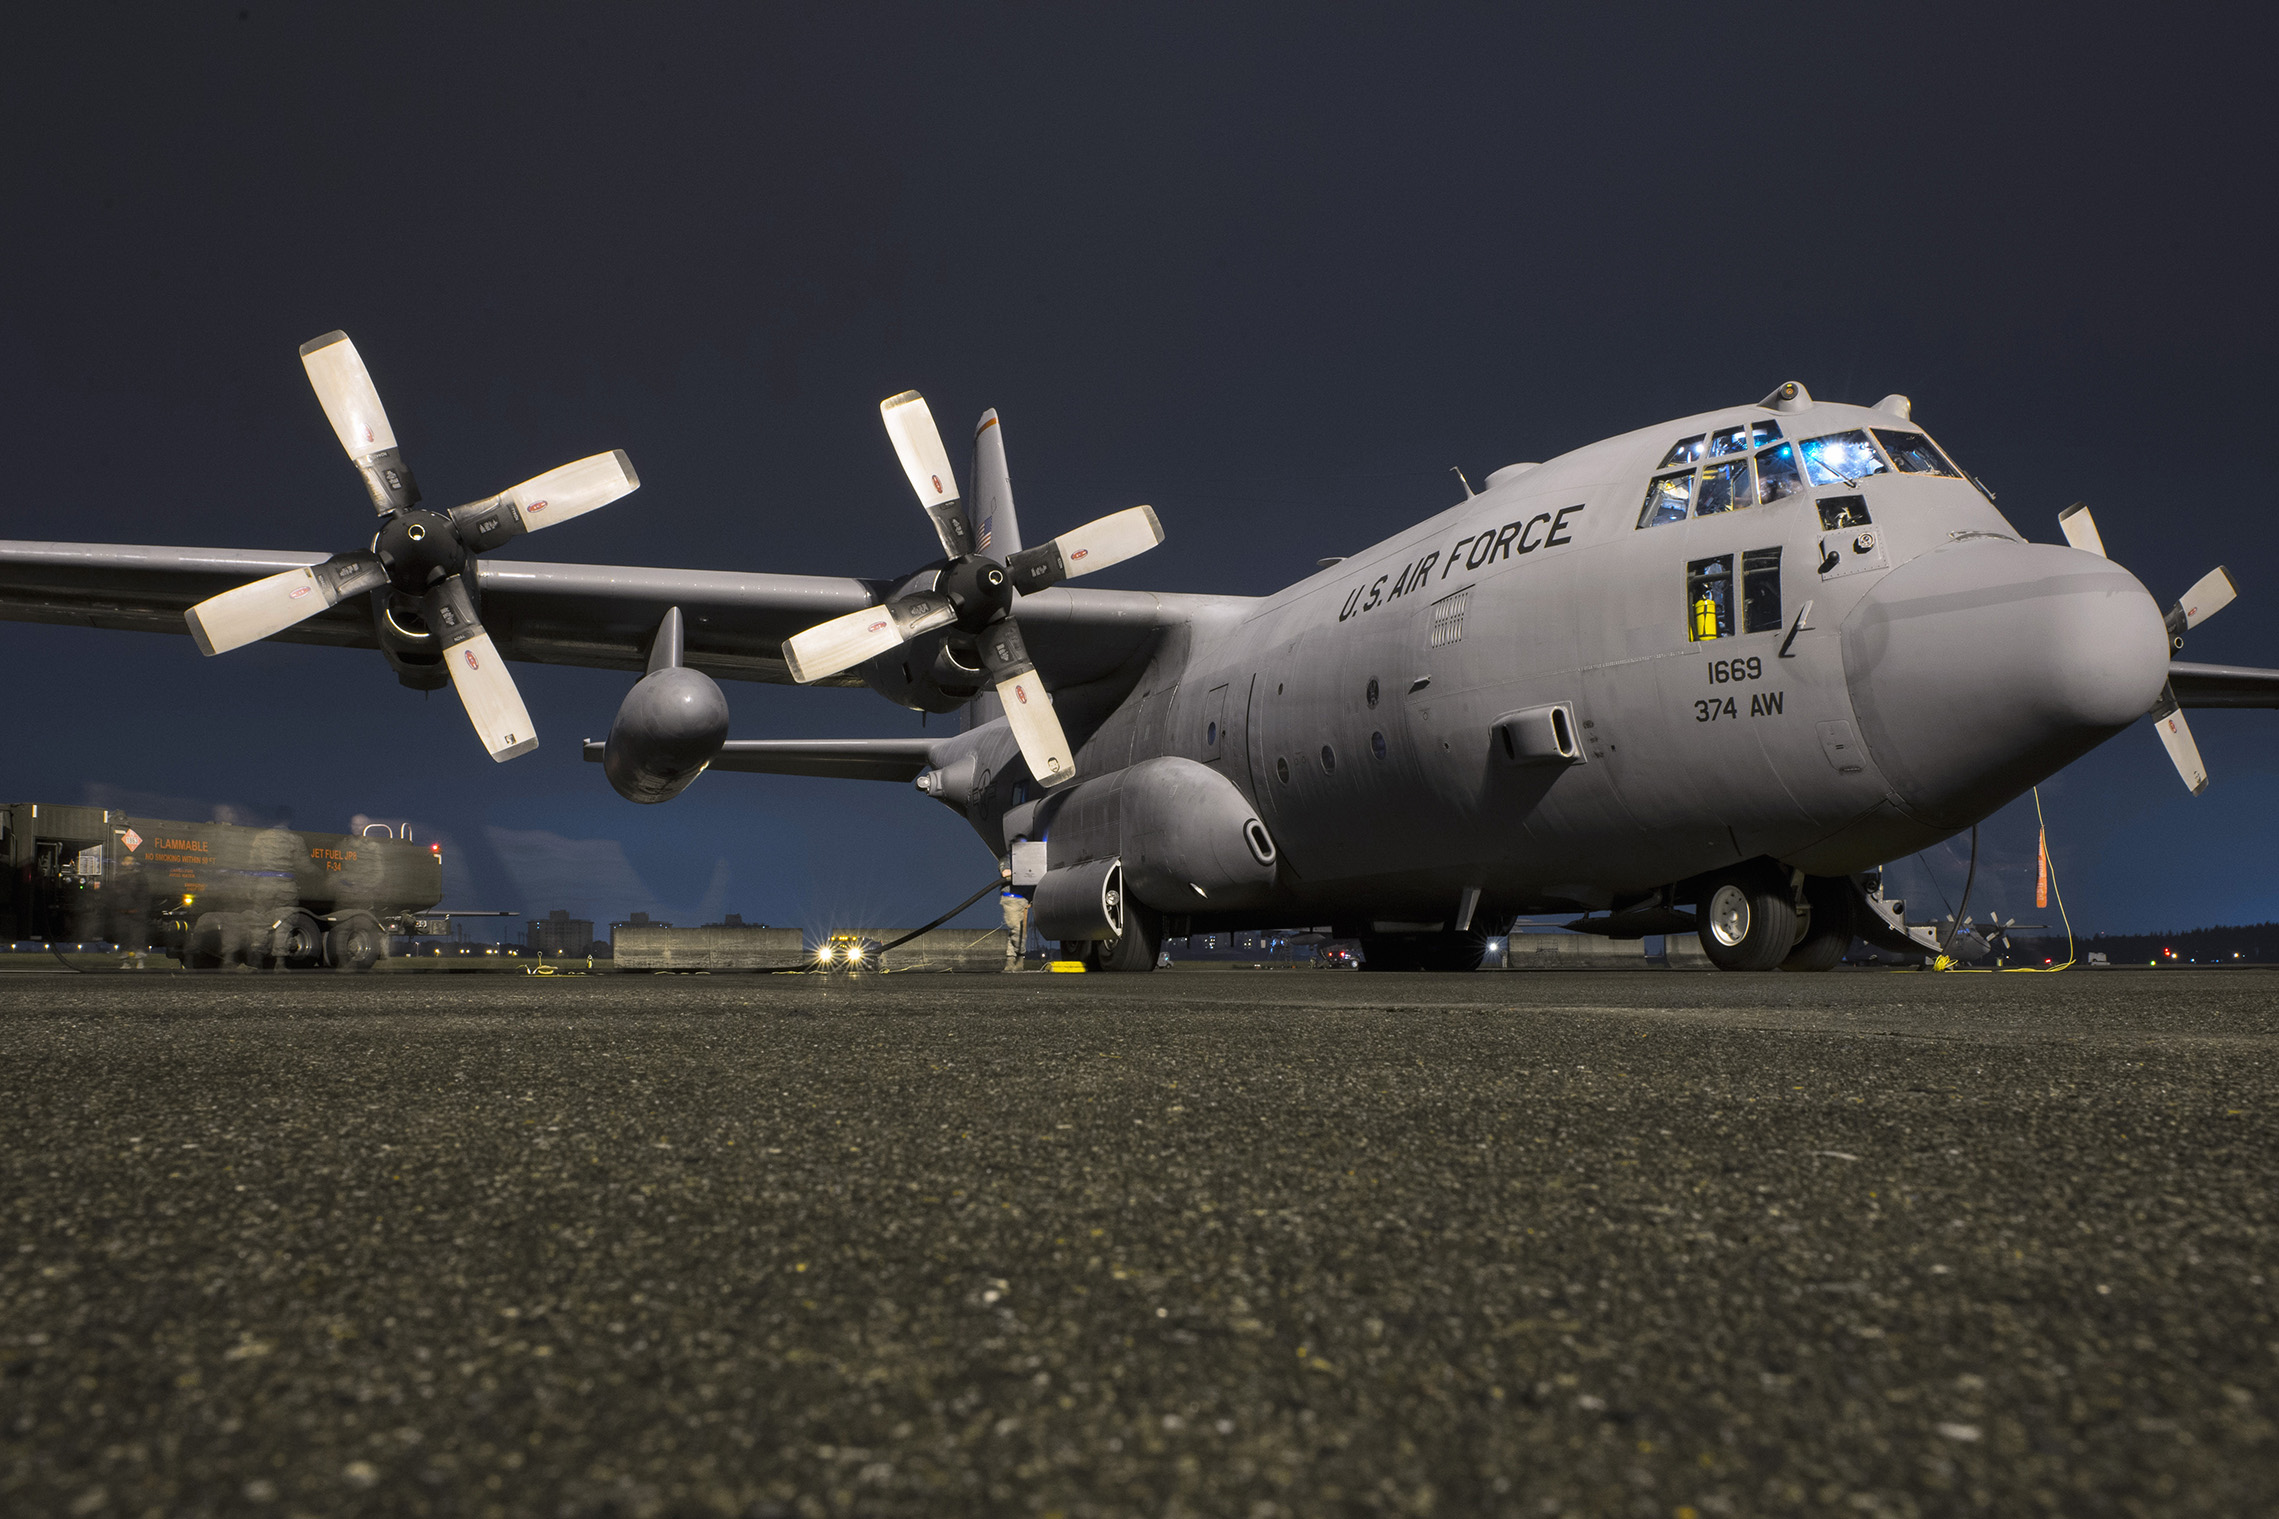 Airmen with the 374th Aircraft Maintenance Squadron and 374th Logistical Readiness Squadron fuel a C-130 Hercules during VIGILANT ACE 16 at Yokota Air Base, Japan, Nov. 2, 2015. Airmen prepped multiple C-130s to take part in operational flights during VIGILANT ACE 16, a U.S.-Republic of Korea combined exercise aimed at enhancing operational and tactical level coordination through combined and joint combat training. The exercise also provides critical training for the Airmen of the 374th Airlift Wing to maintain peace and stability in Japan and the entire Indo-Asia Pacific region. (U.S. Air Force photo by Staff Sgt. Cody H. Ramirez/Released)